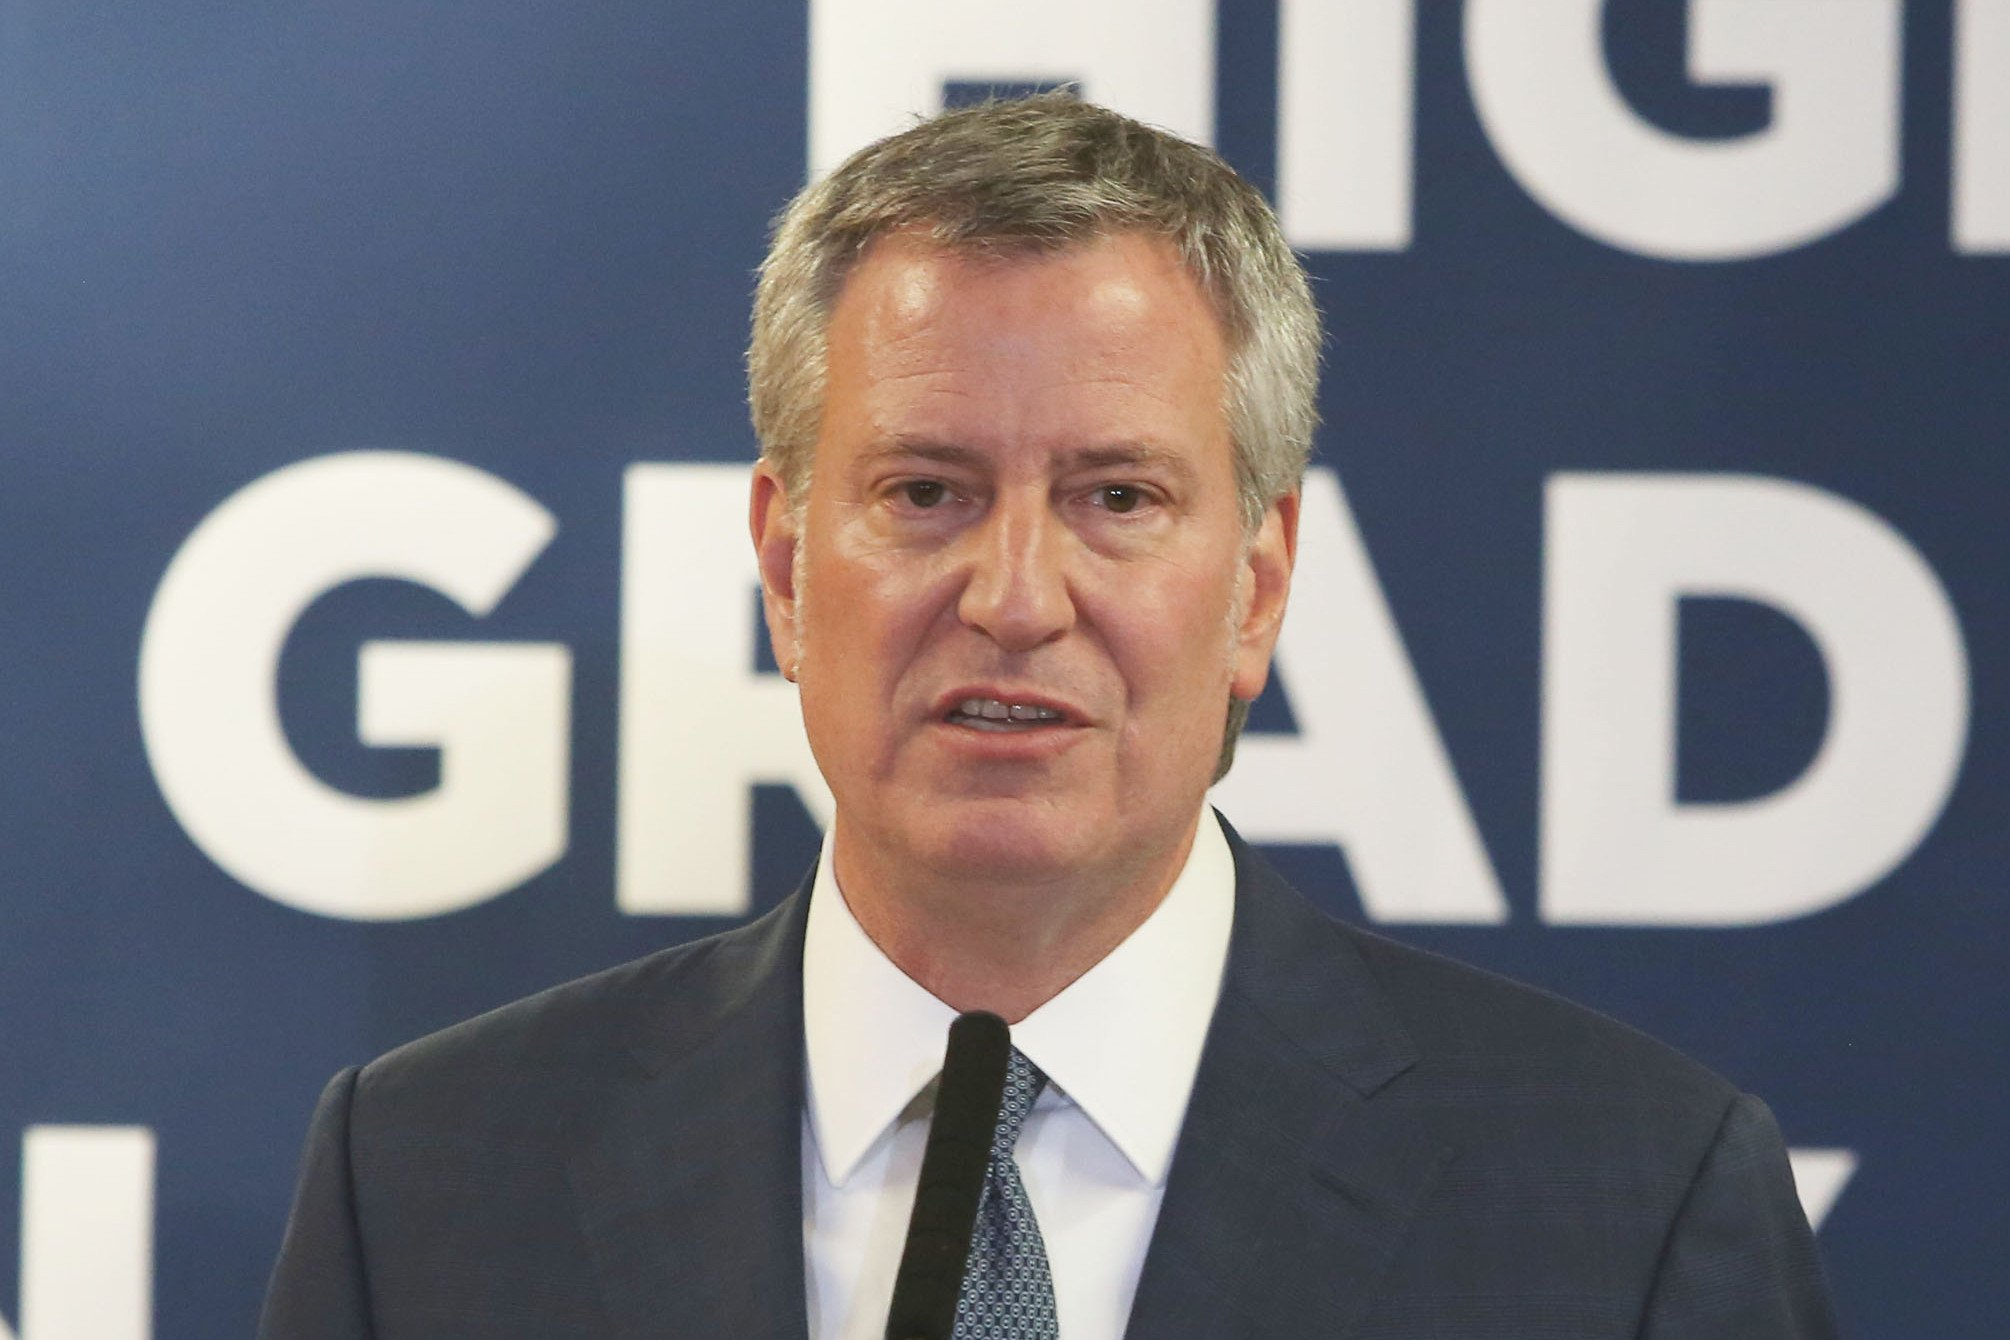 De Blasio to spend $500K to prevent election hacking